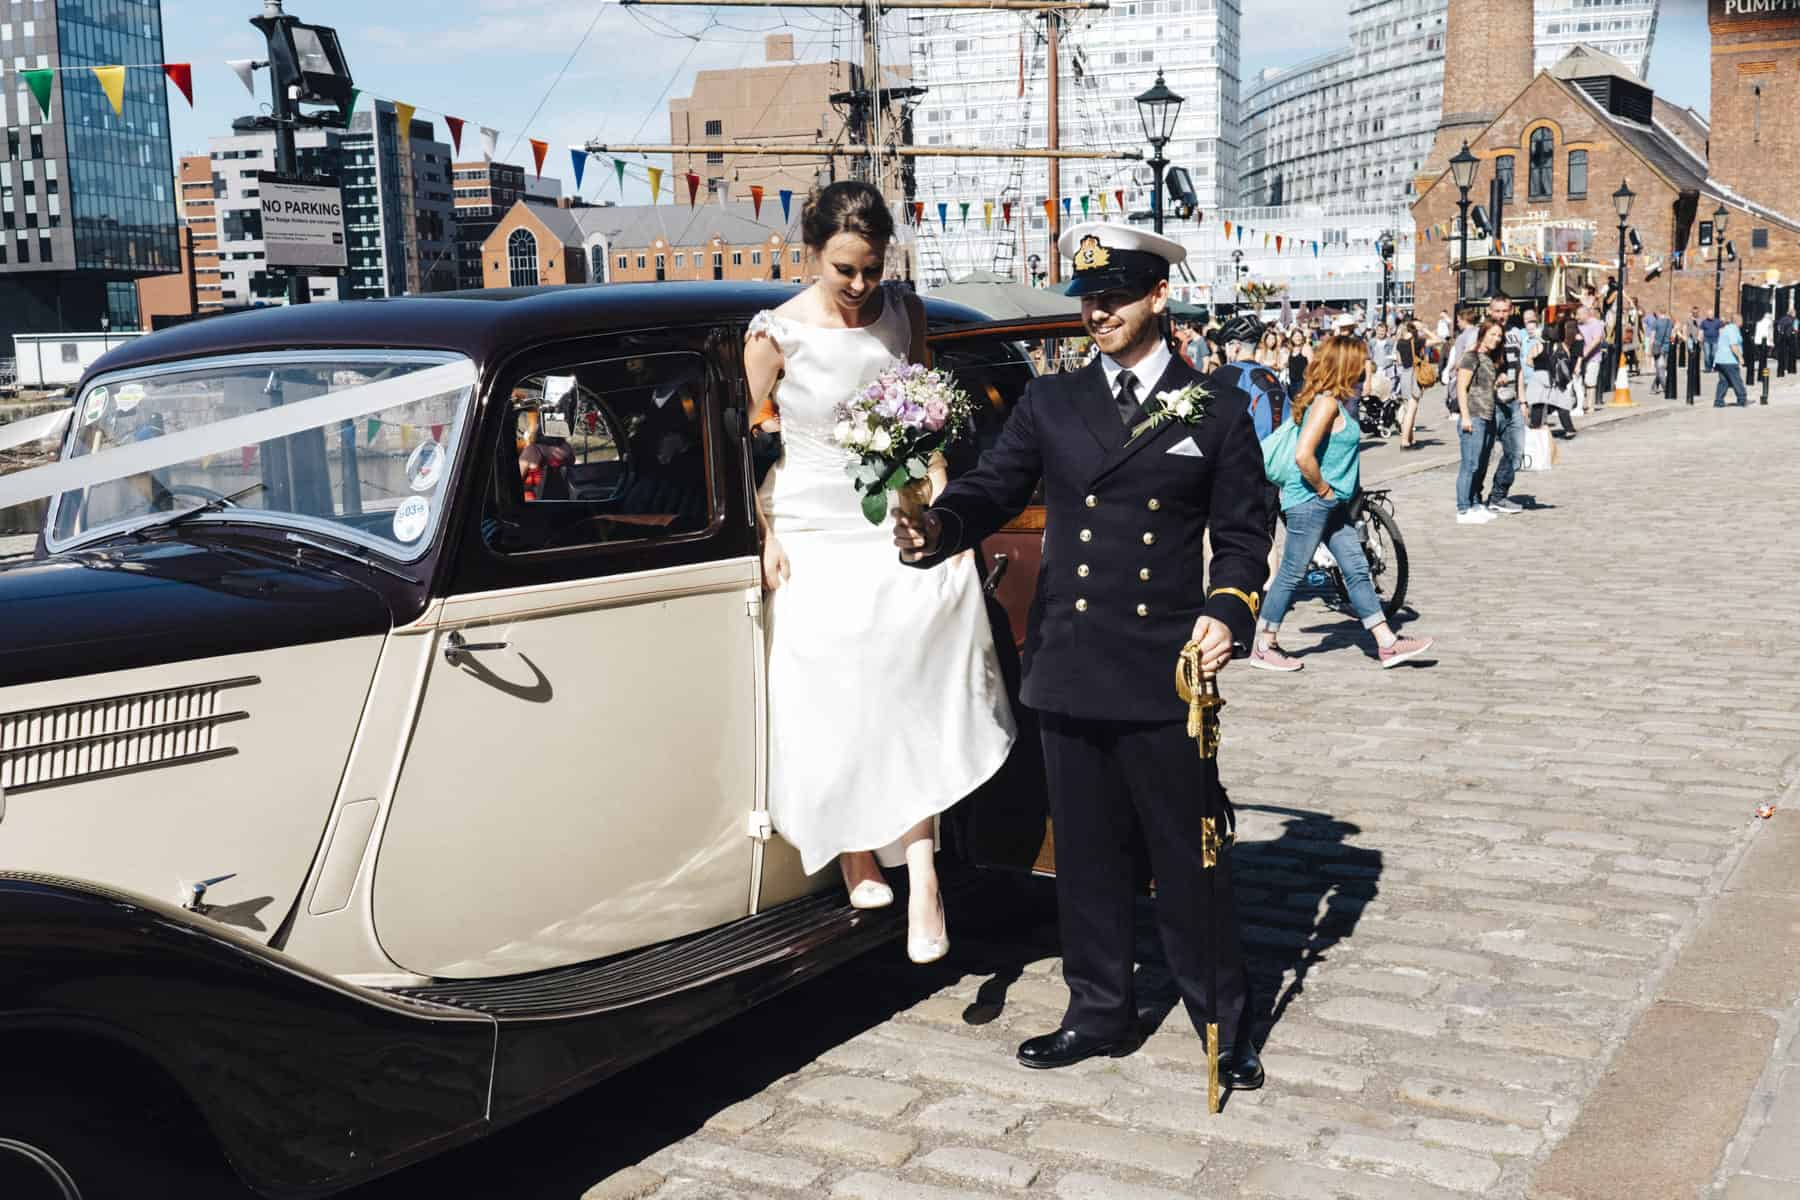 groom helps bride out of the car